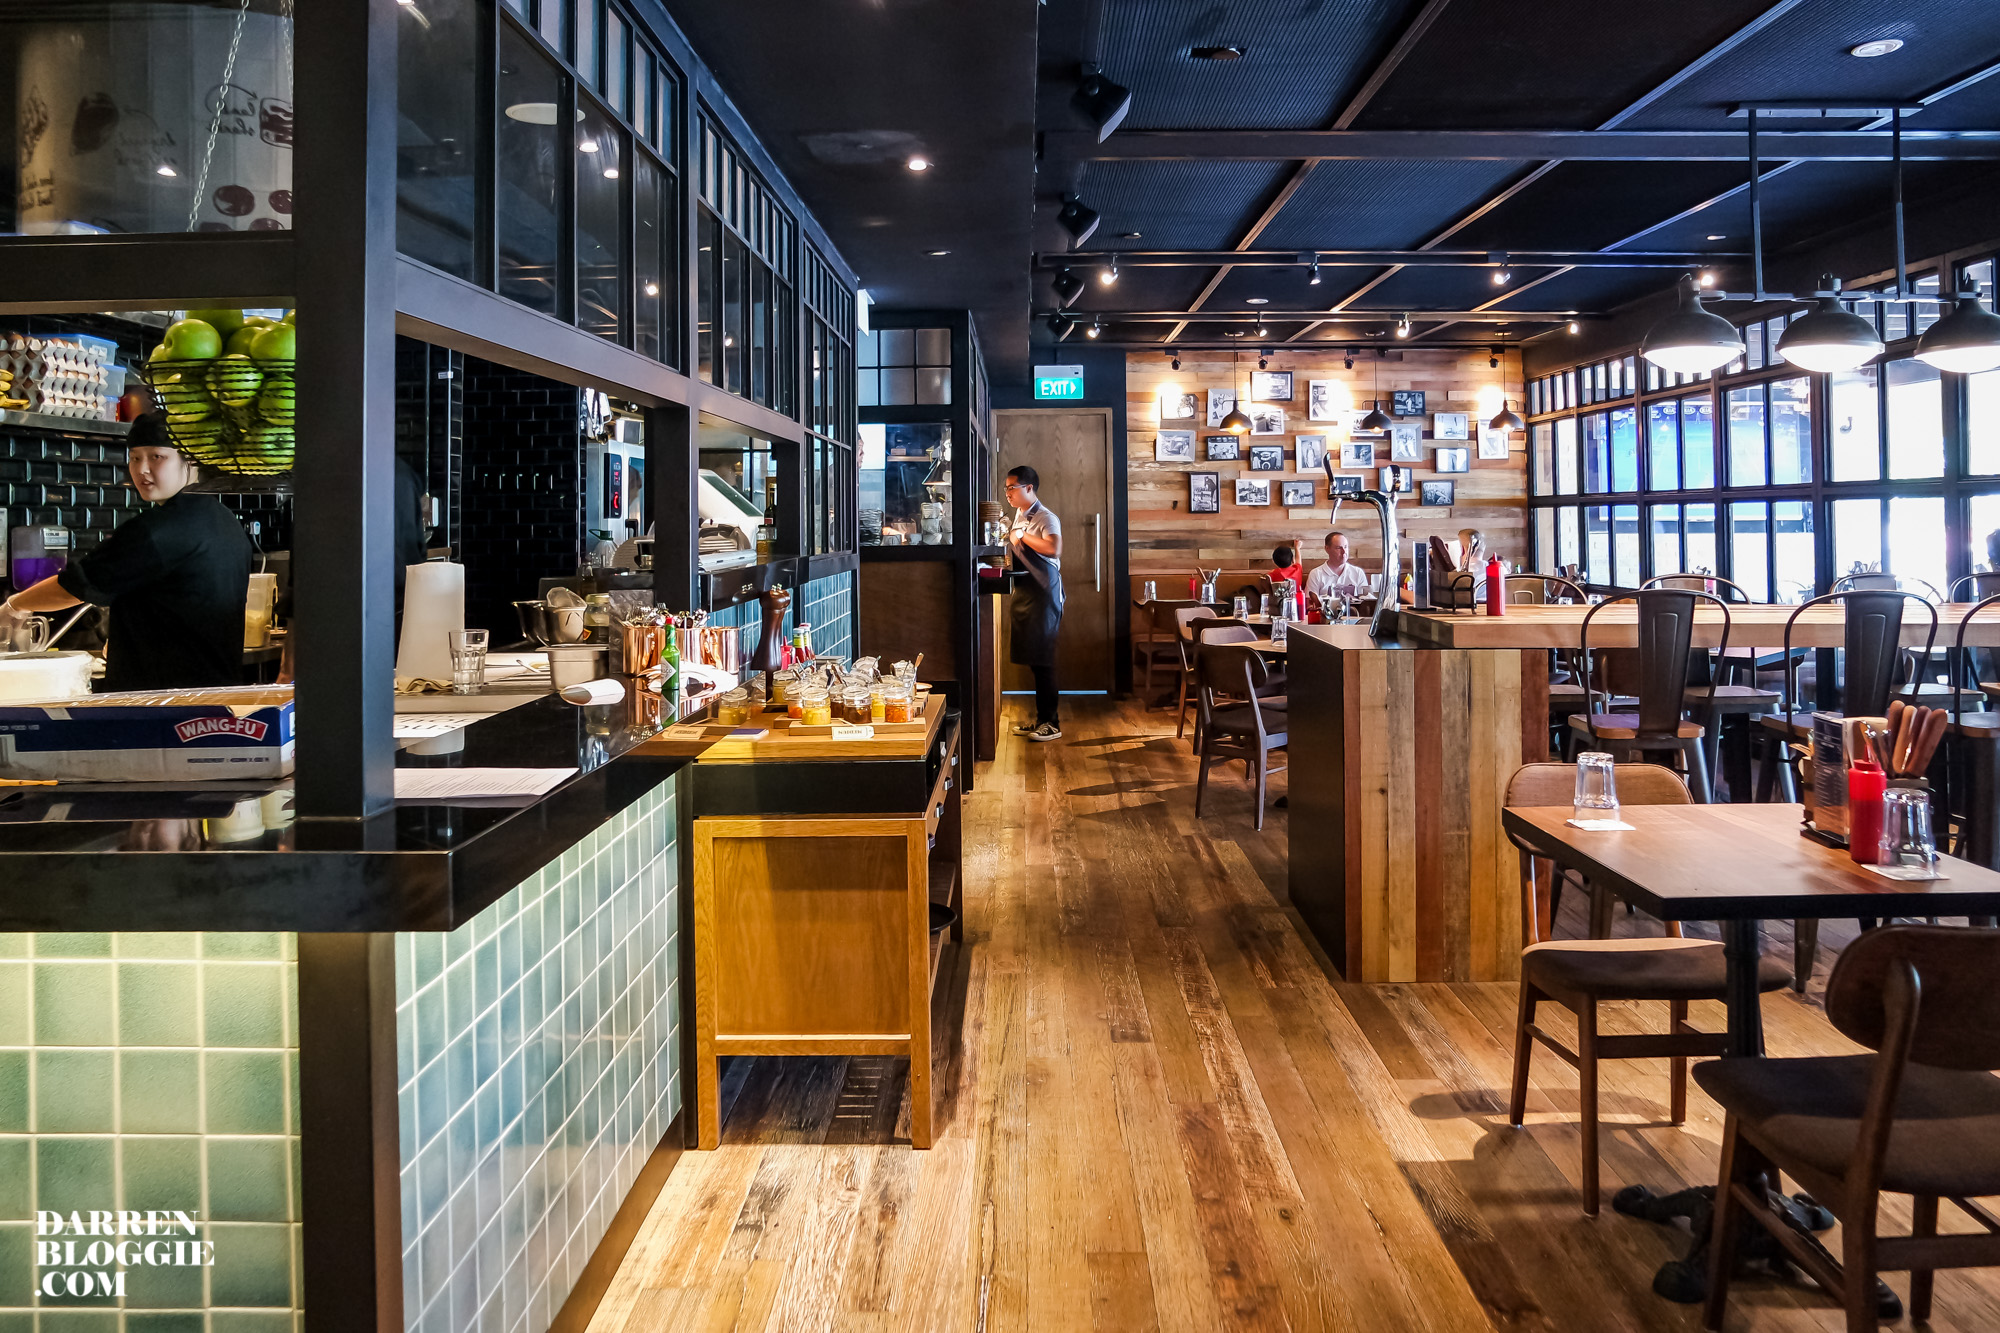 The Chop House Opens New Branch in Katong | Darren Bloggie